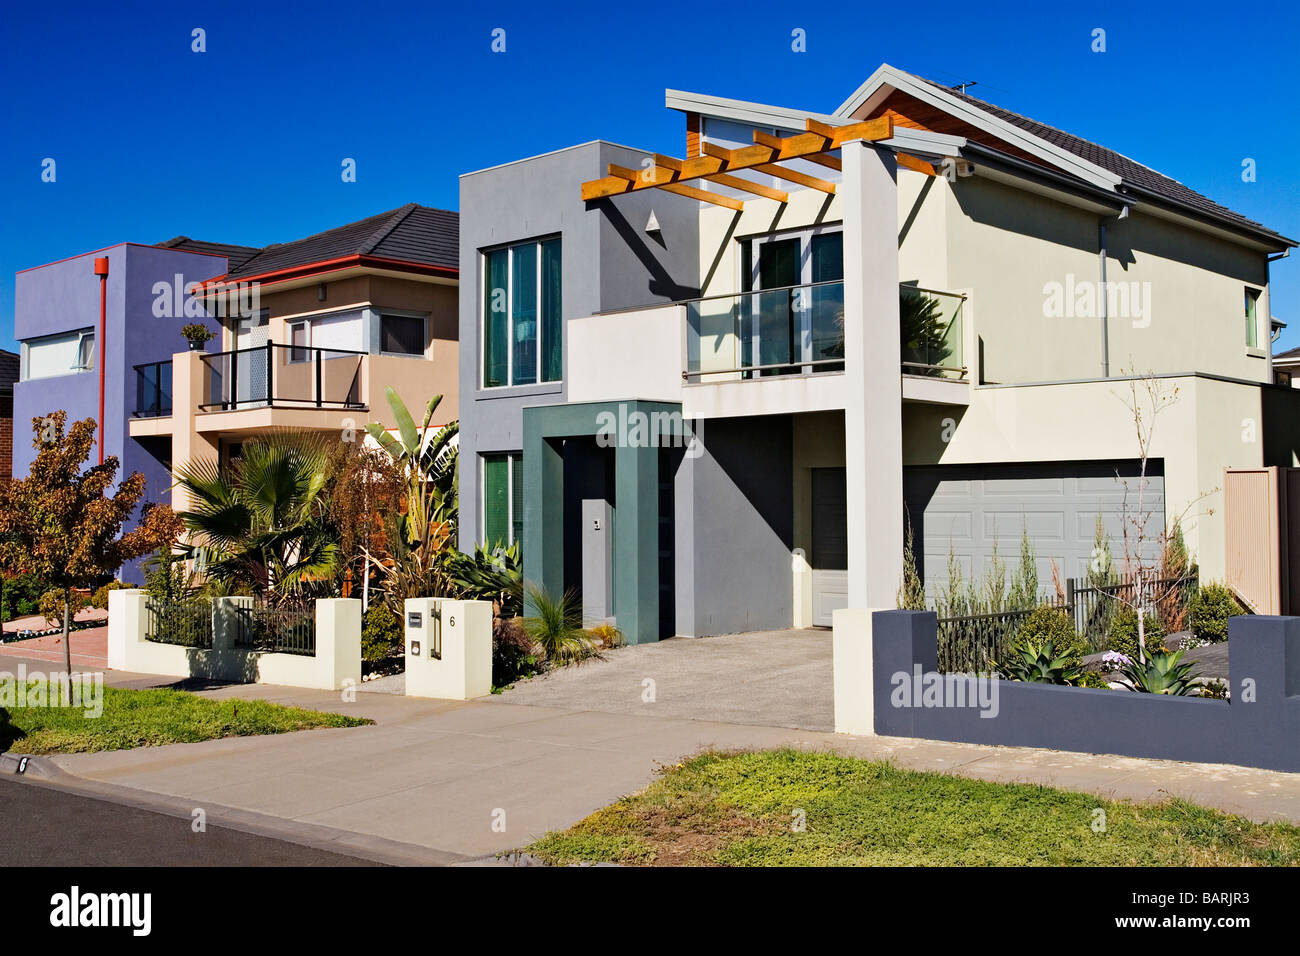 Housing Industry / New contemporary residential houses.Melbourne Victoria Australia. Stock Photo